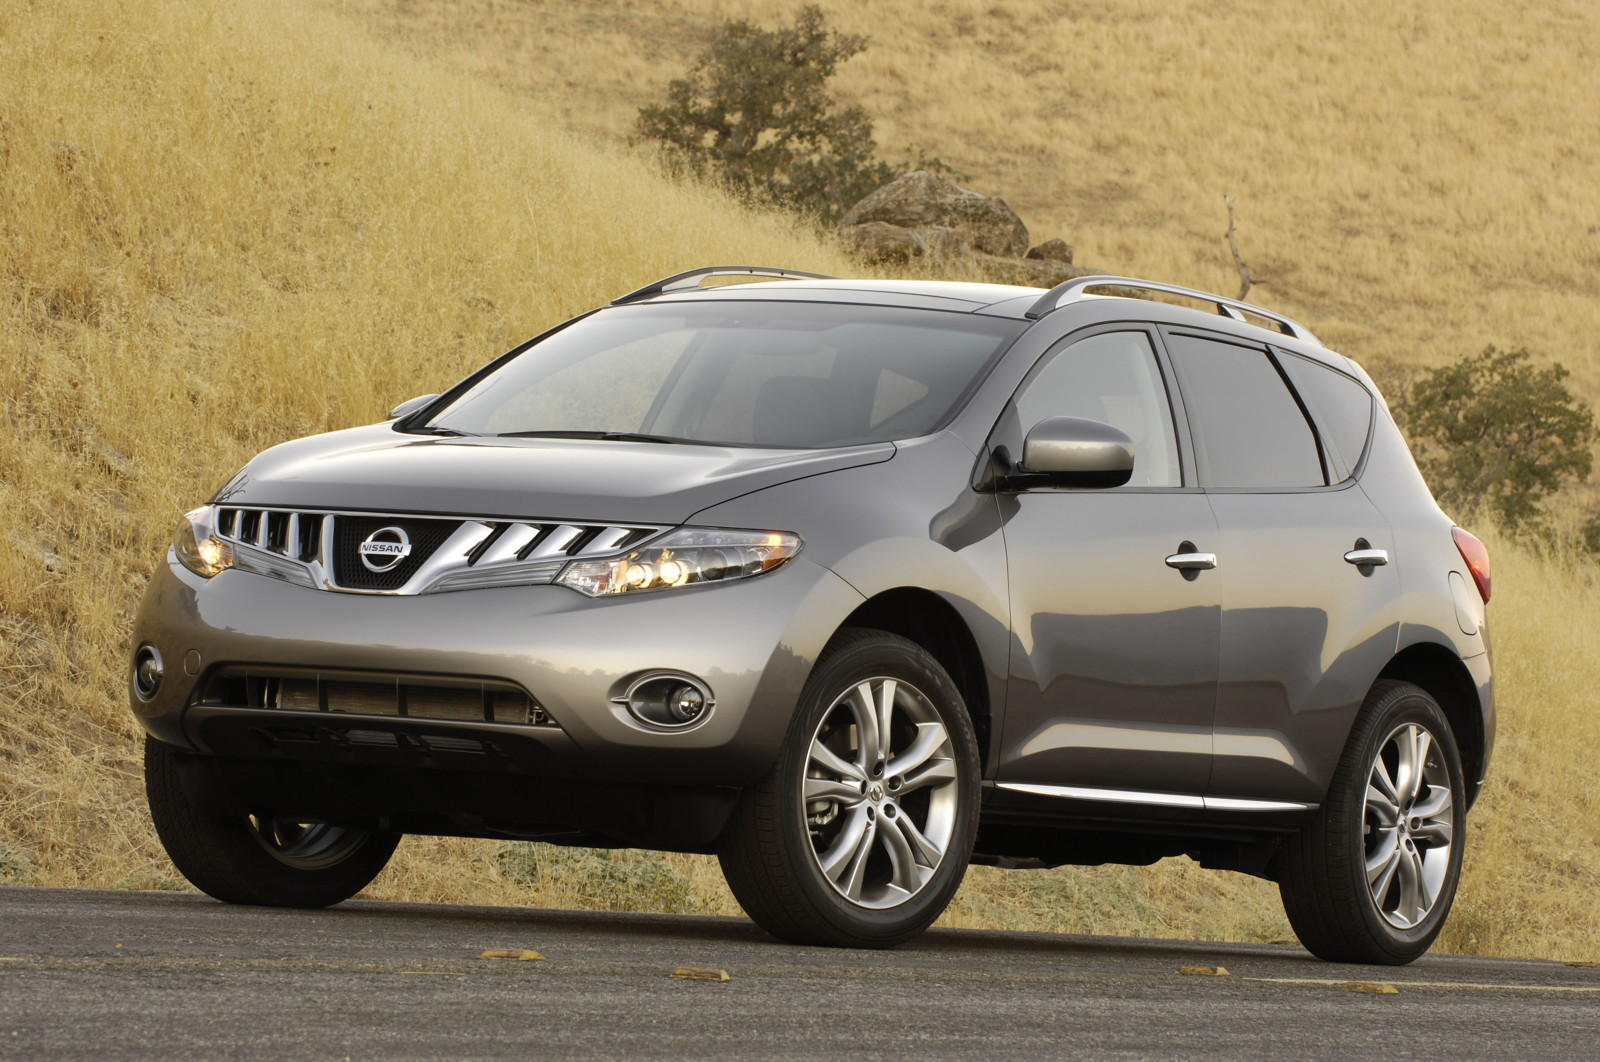 2009 murano z51 service and repair manual